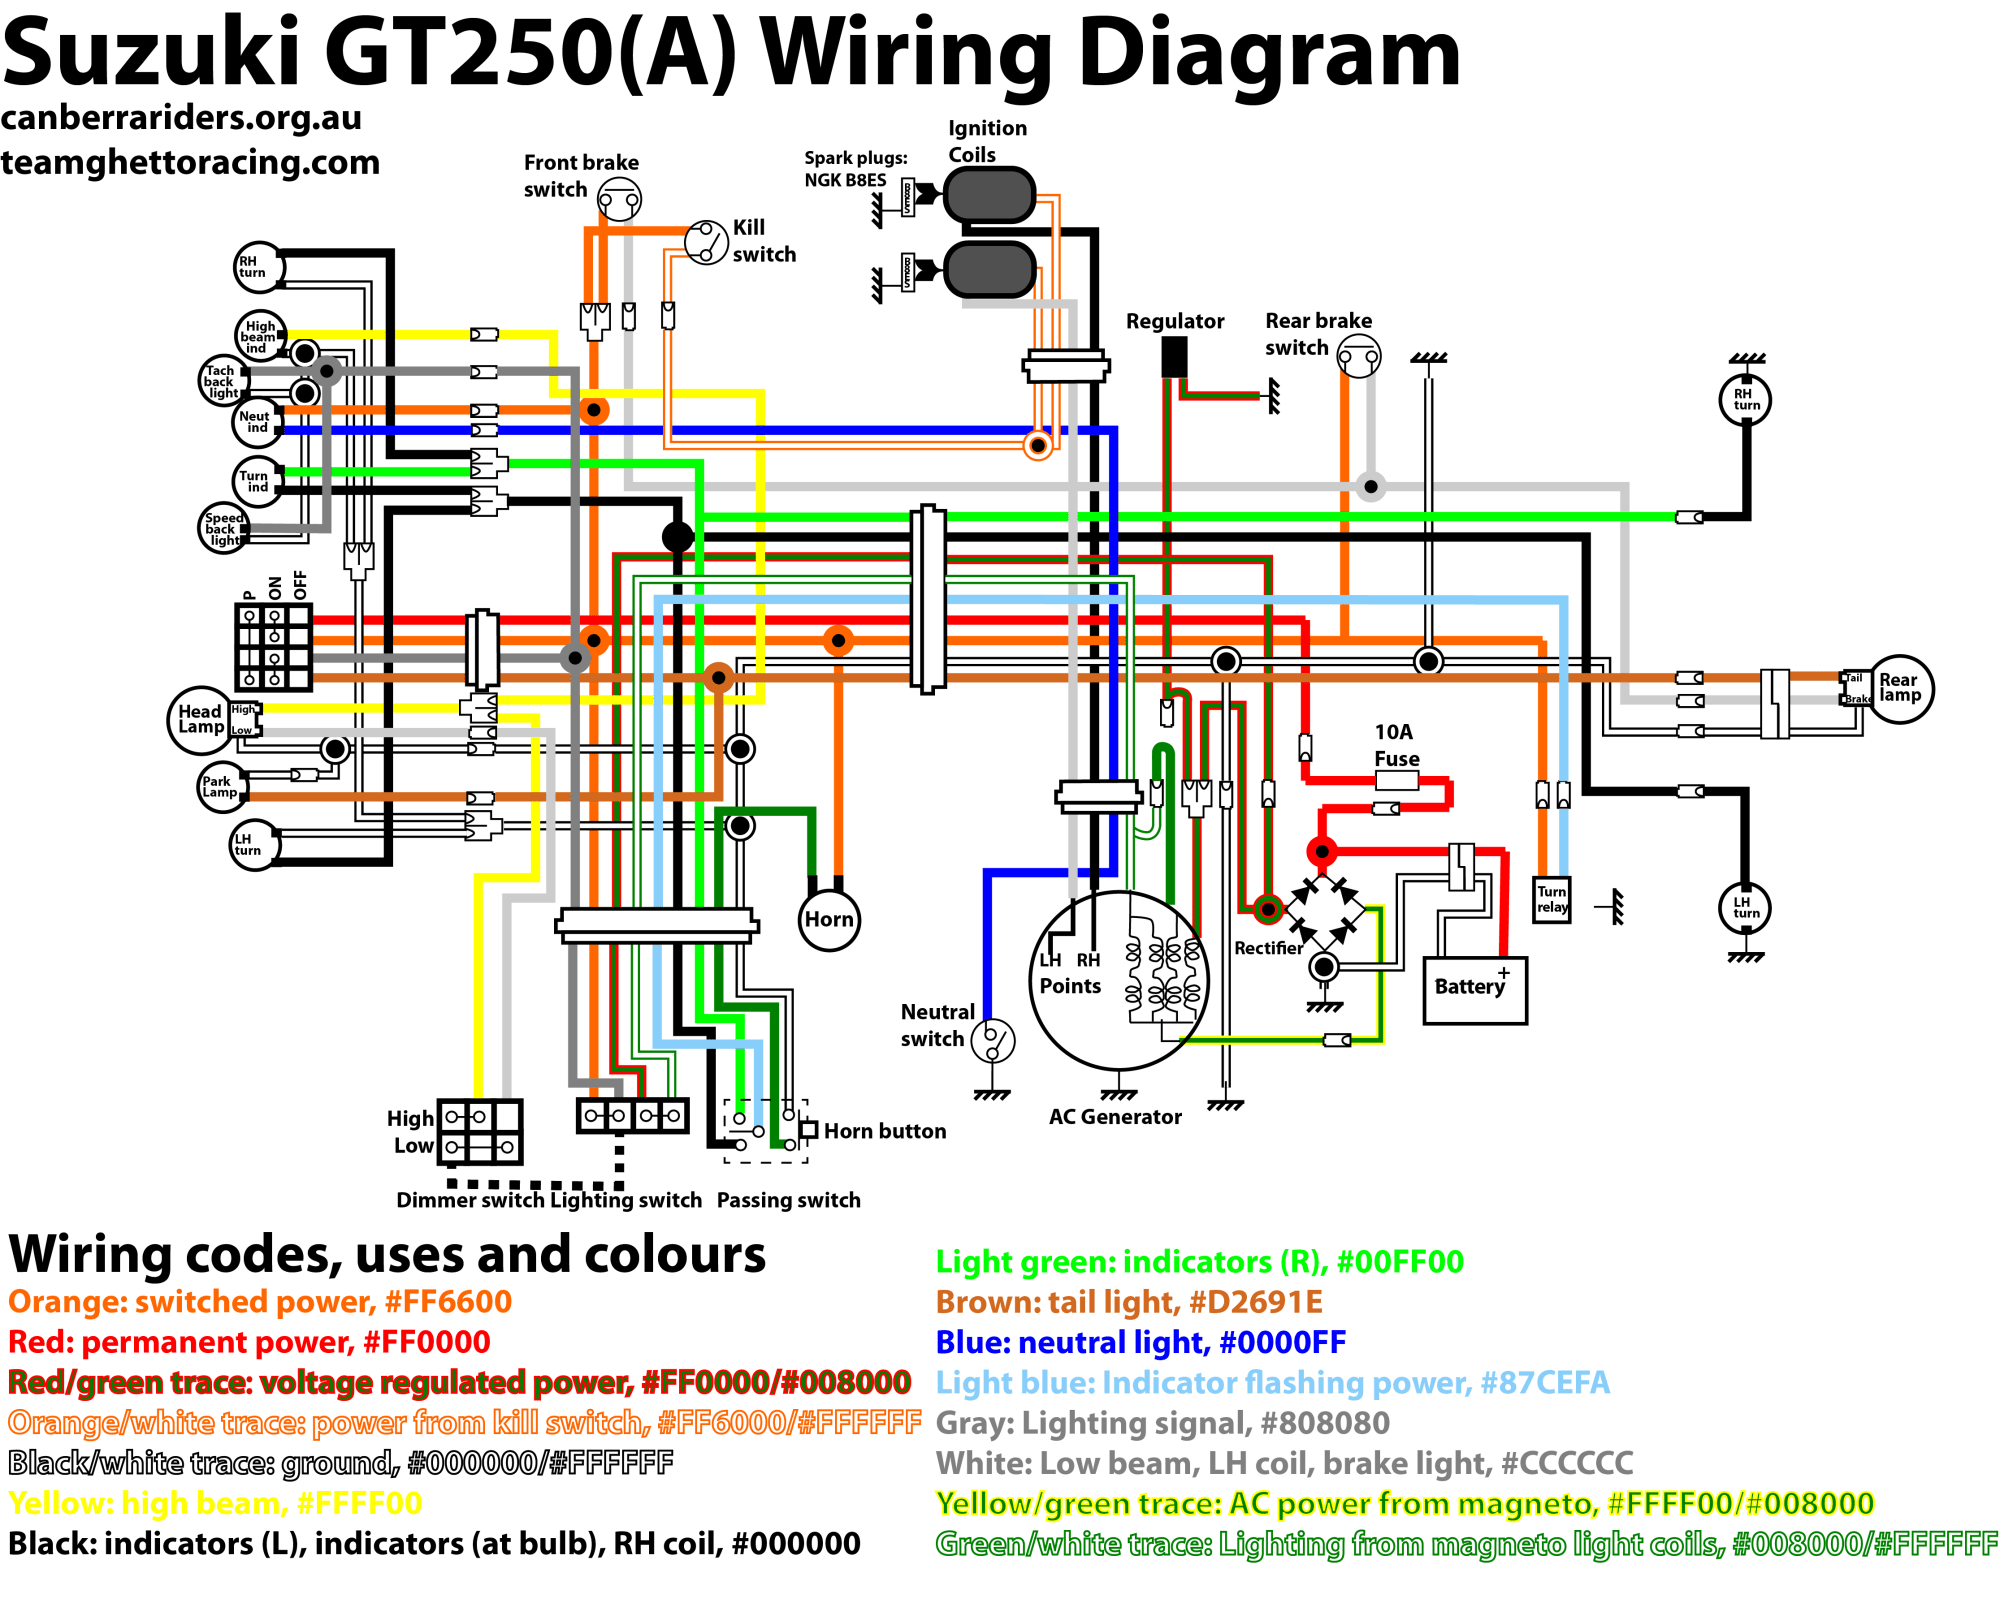 hight resolution of suzuki wiring diagram wiring diagramsuzuki motorcycle wiring codes database wiring diagram mix suzuki wiring diagram 16